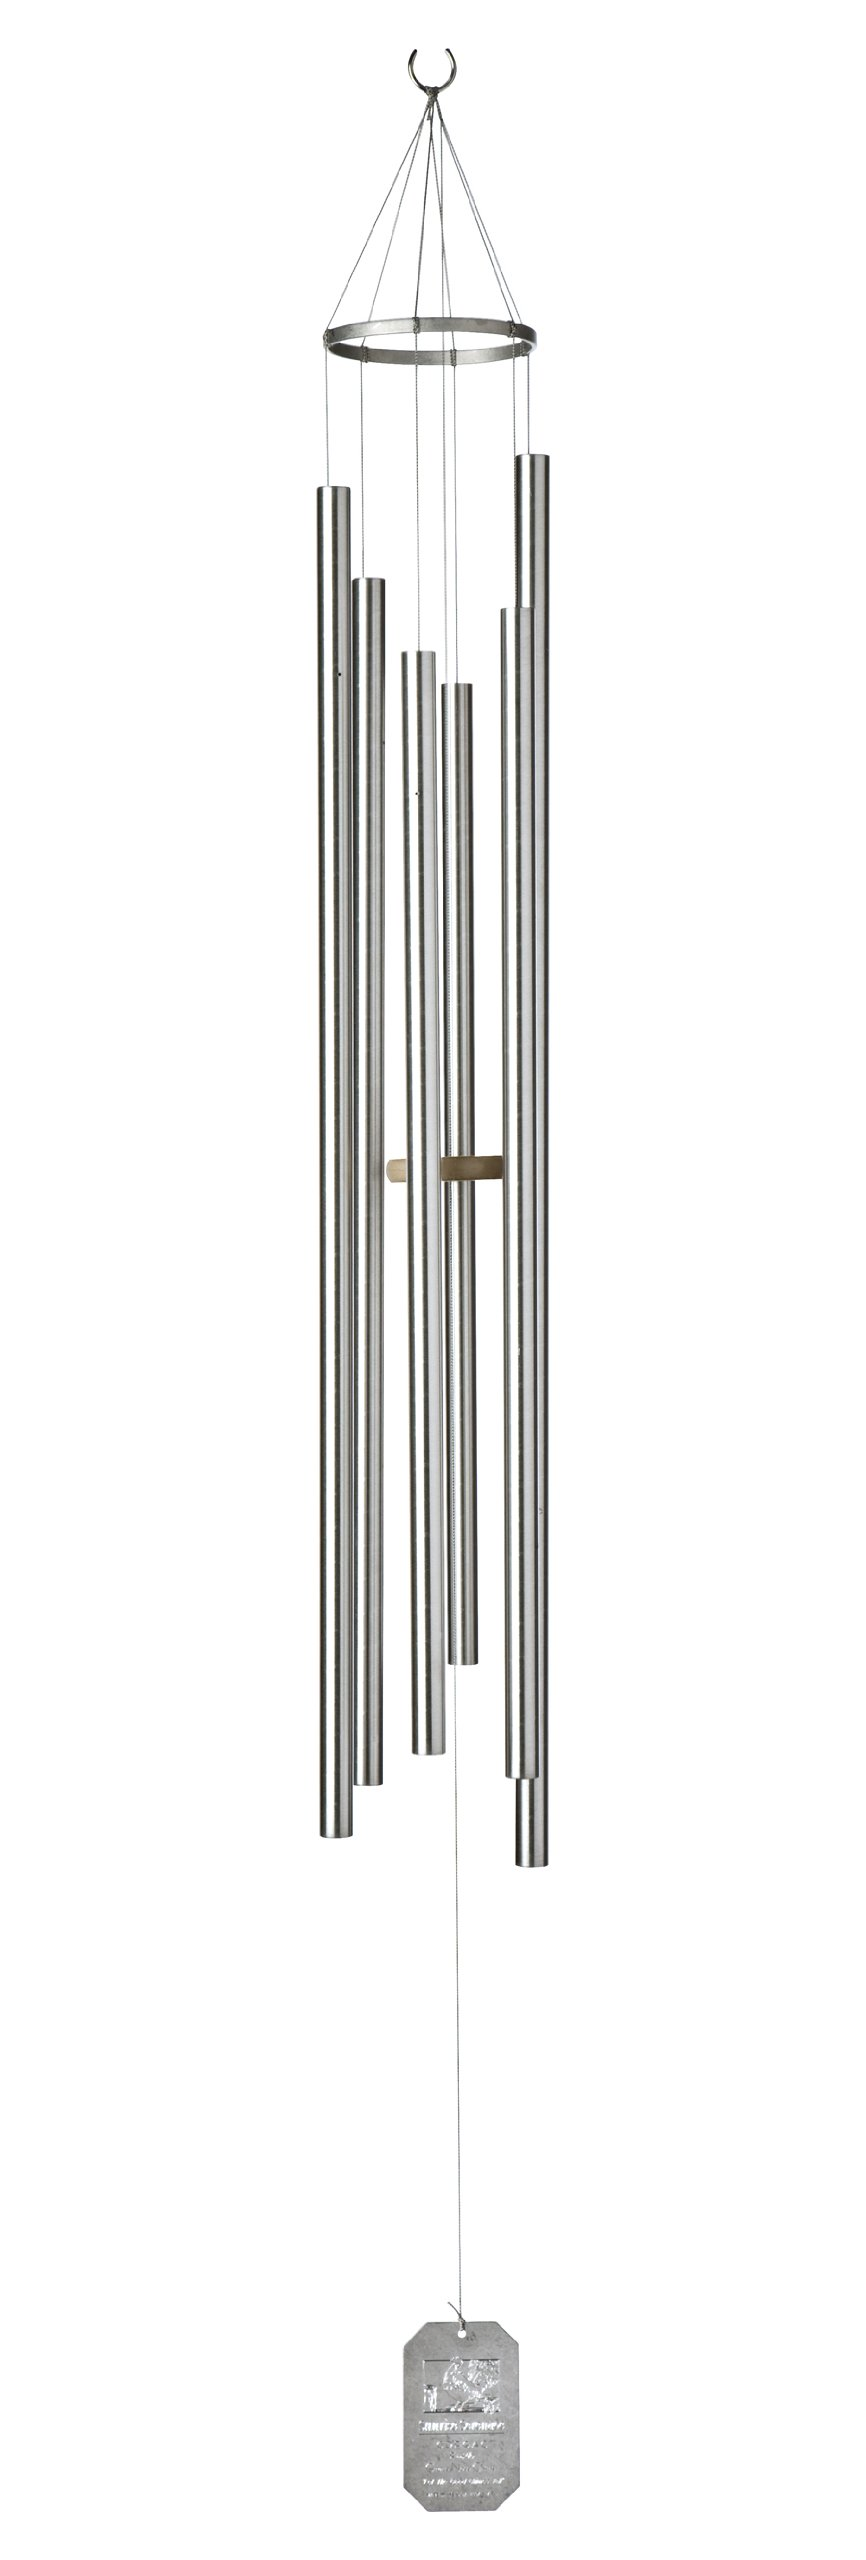 Grace Note Chimes 7PS Petite Steeple Sunrise Serenade Wind Chimes, 50-Inch, Silver by Grace Note Chimes